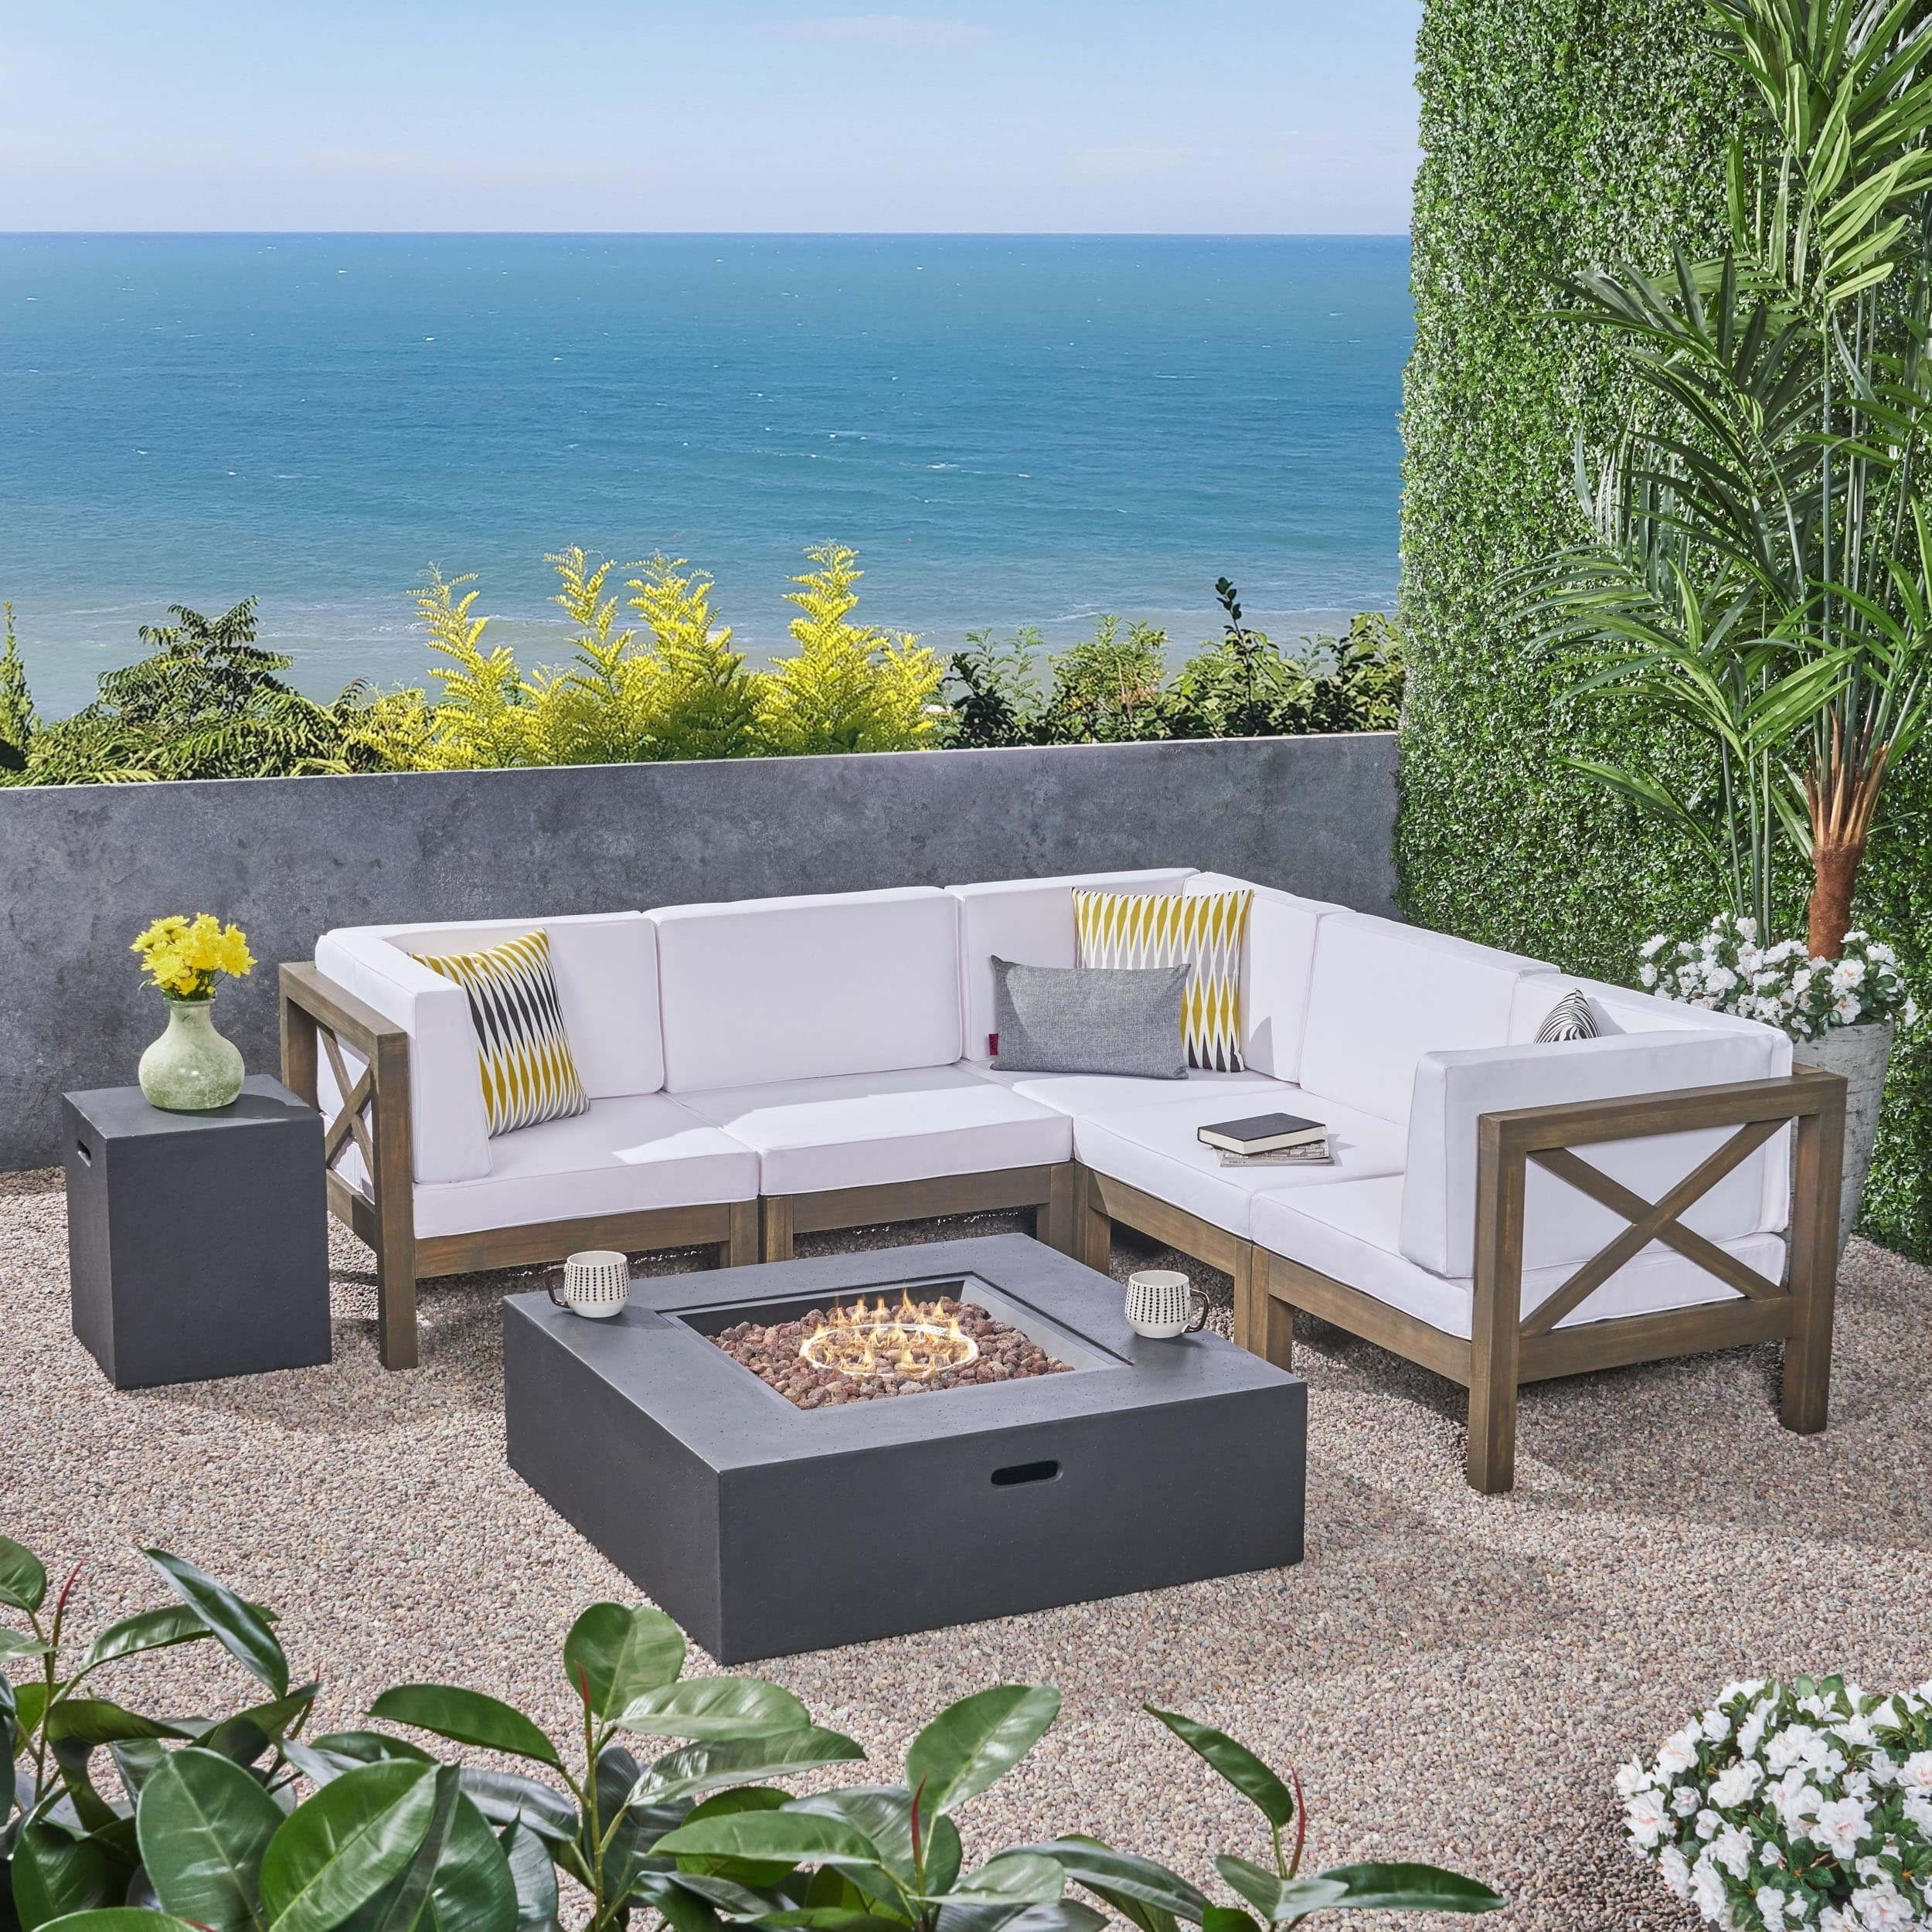 Wood Sectional Patio Furniture.Brava Outdoor 7 Piece Acacia Wood Sectional Sofa Set With Fire Pit